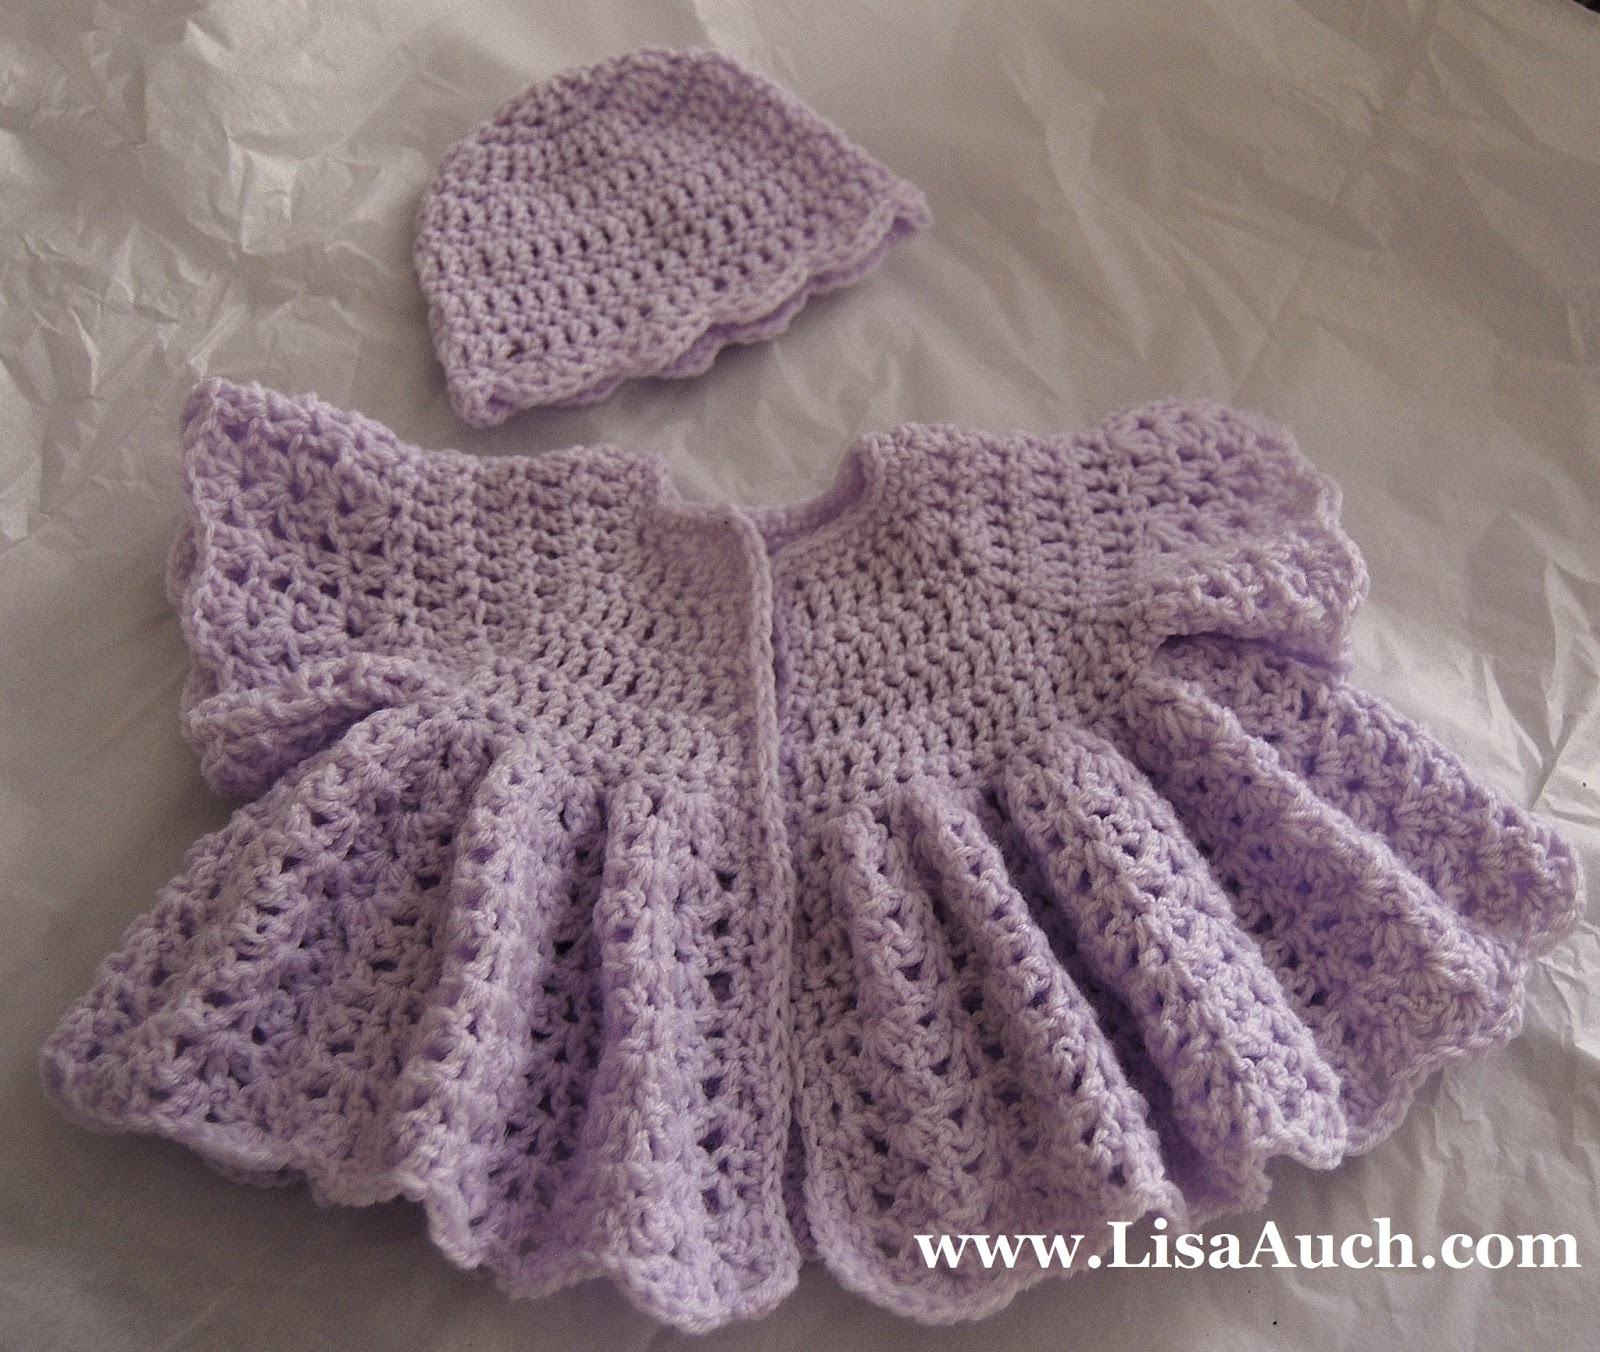 Free crochet pattern beautiful vintage swing baby cardigan 0 3 free crochet patterns crochet baby layette patterns baby sweater patterns baby cardigan and bankloansurffo Image collections